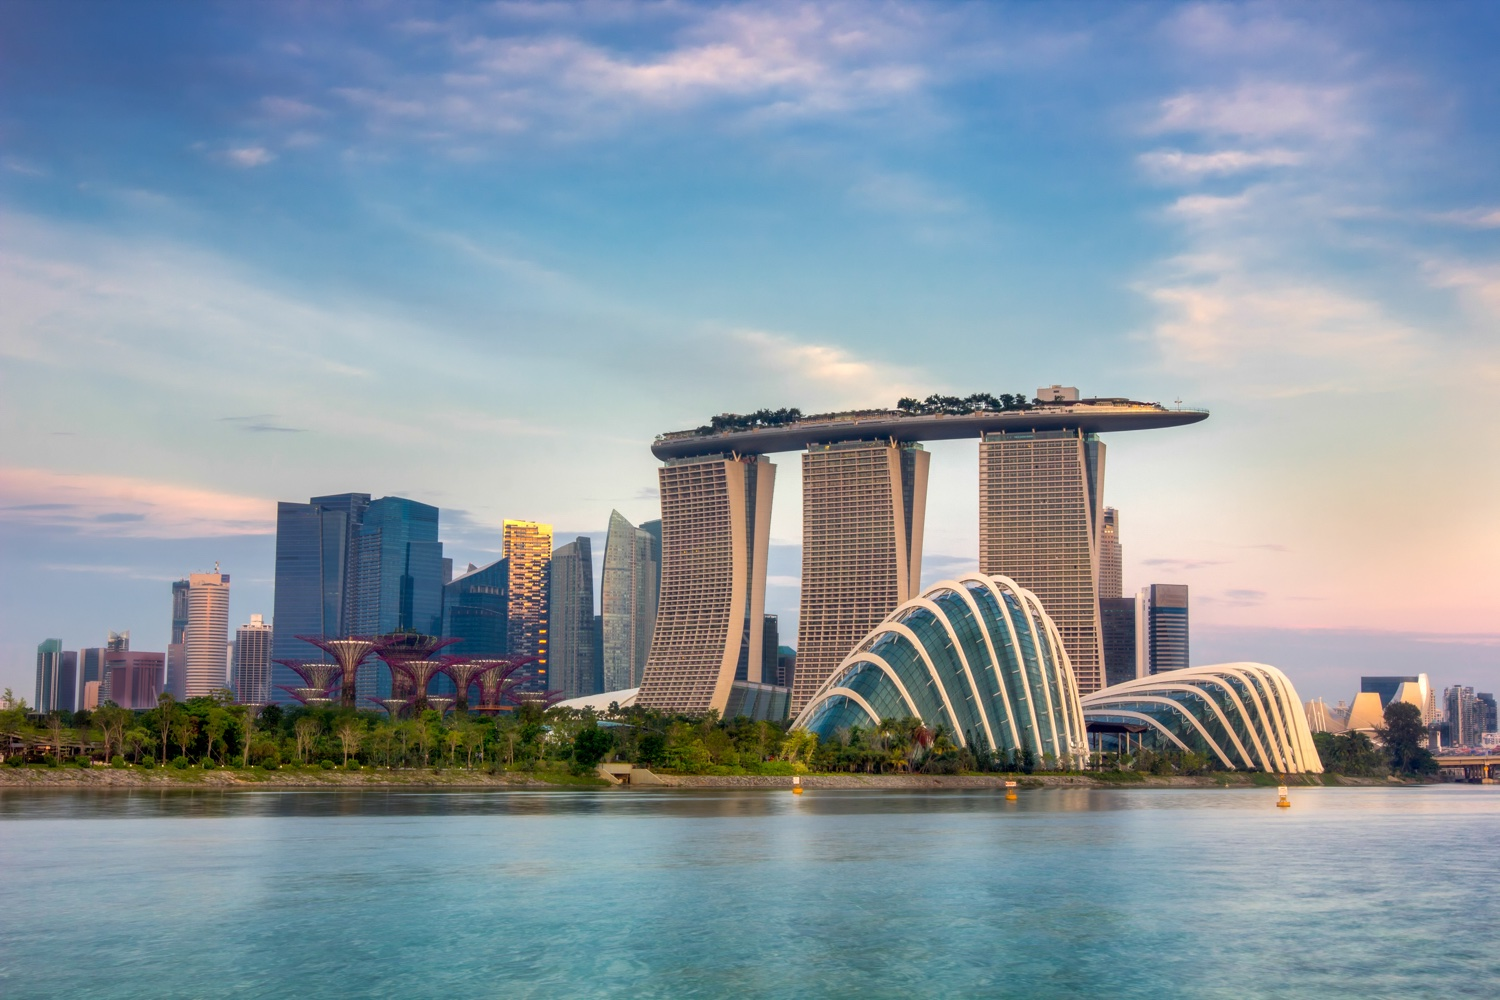 Bakkt's Bitcoin Futures Launch in Singapore in Just Two Weeks - CoinDesk